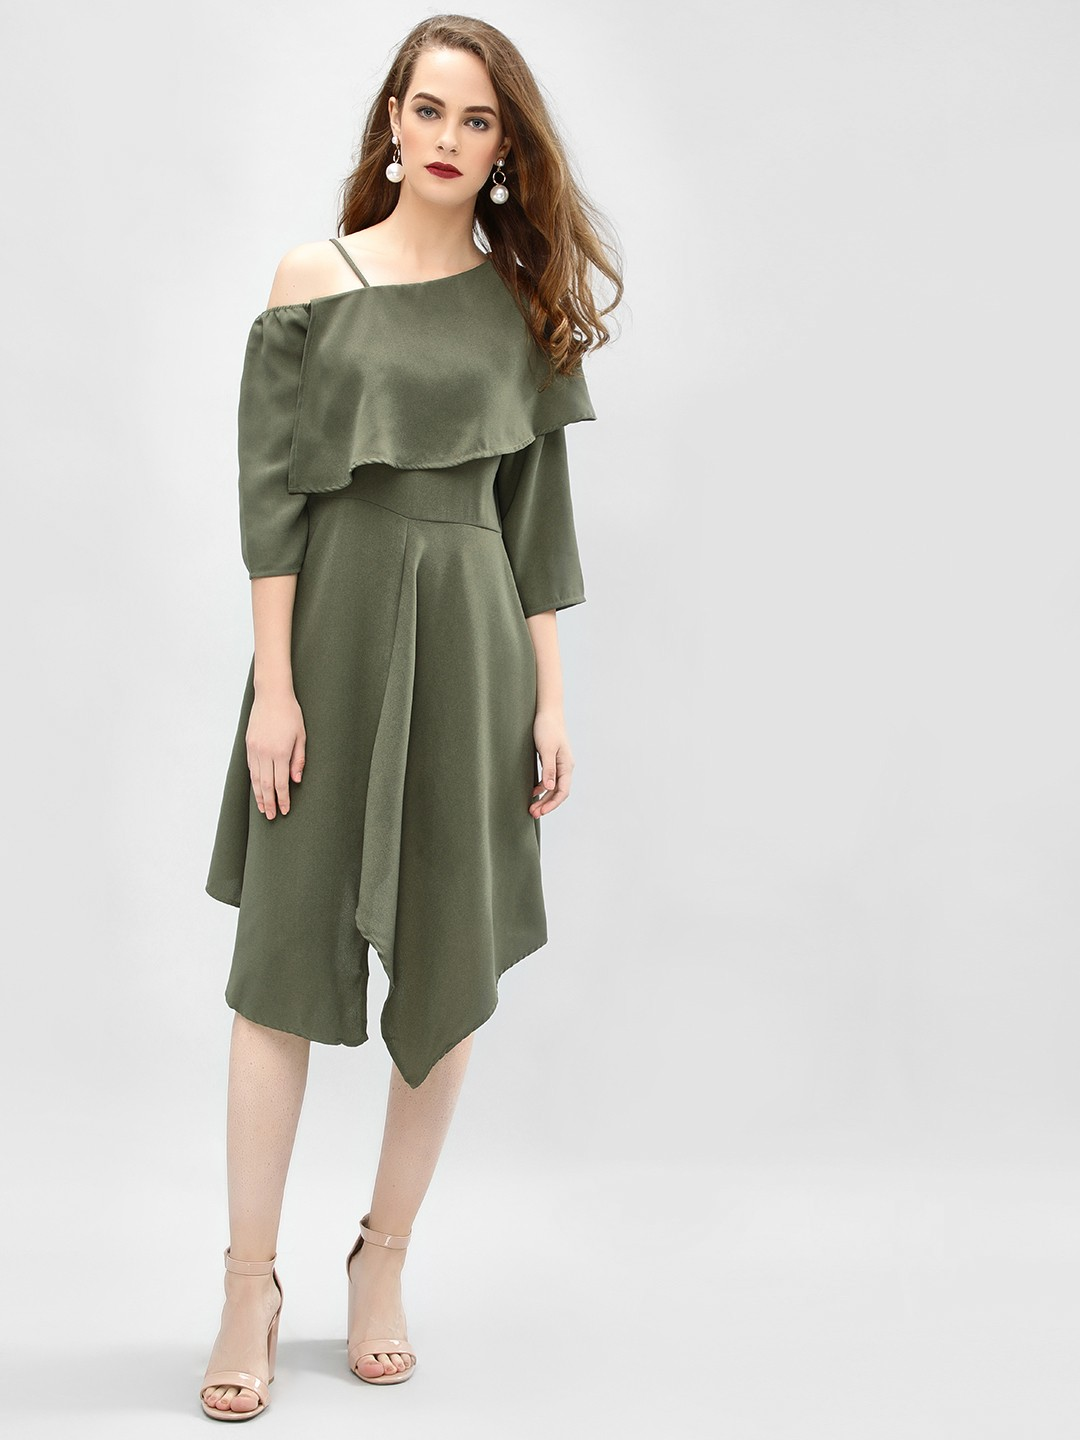 Femella Olive One Shoulder Asymmetric Dress 1